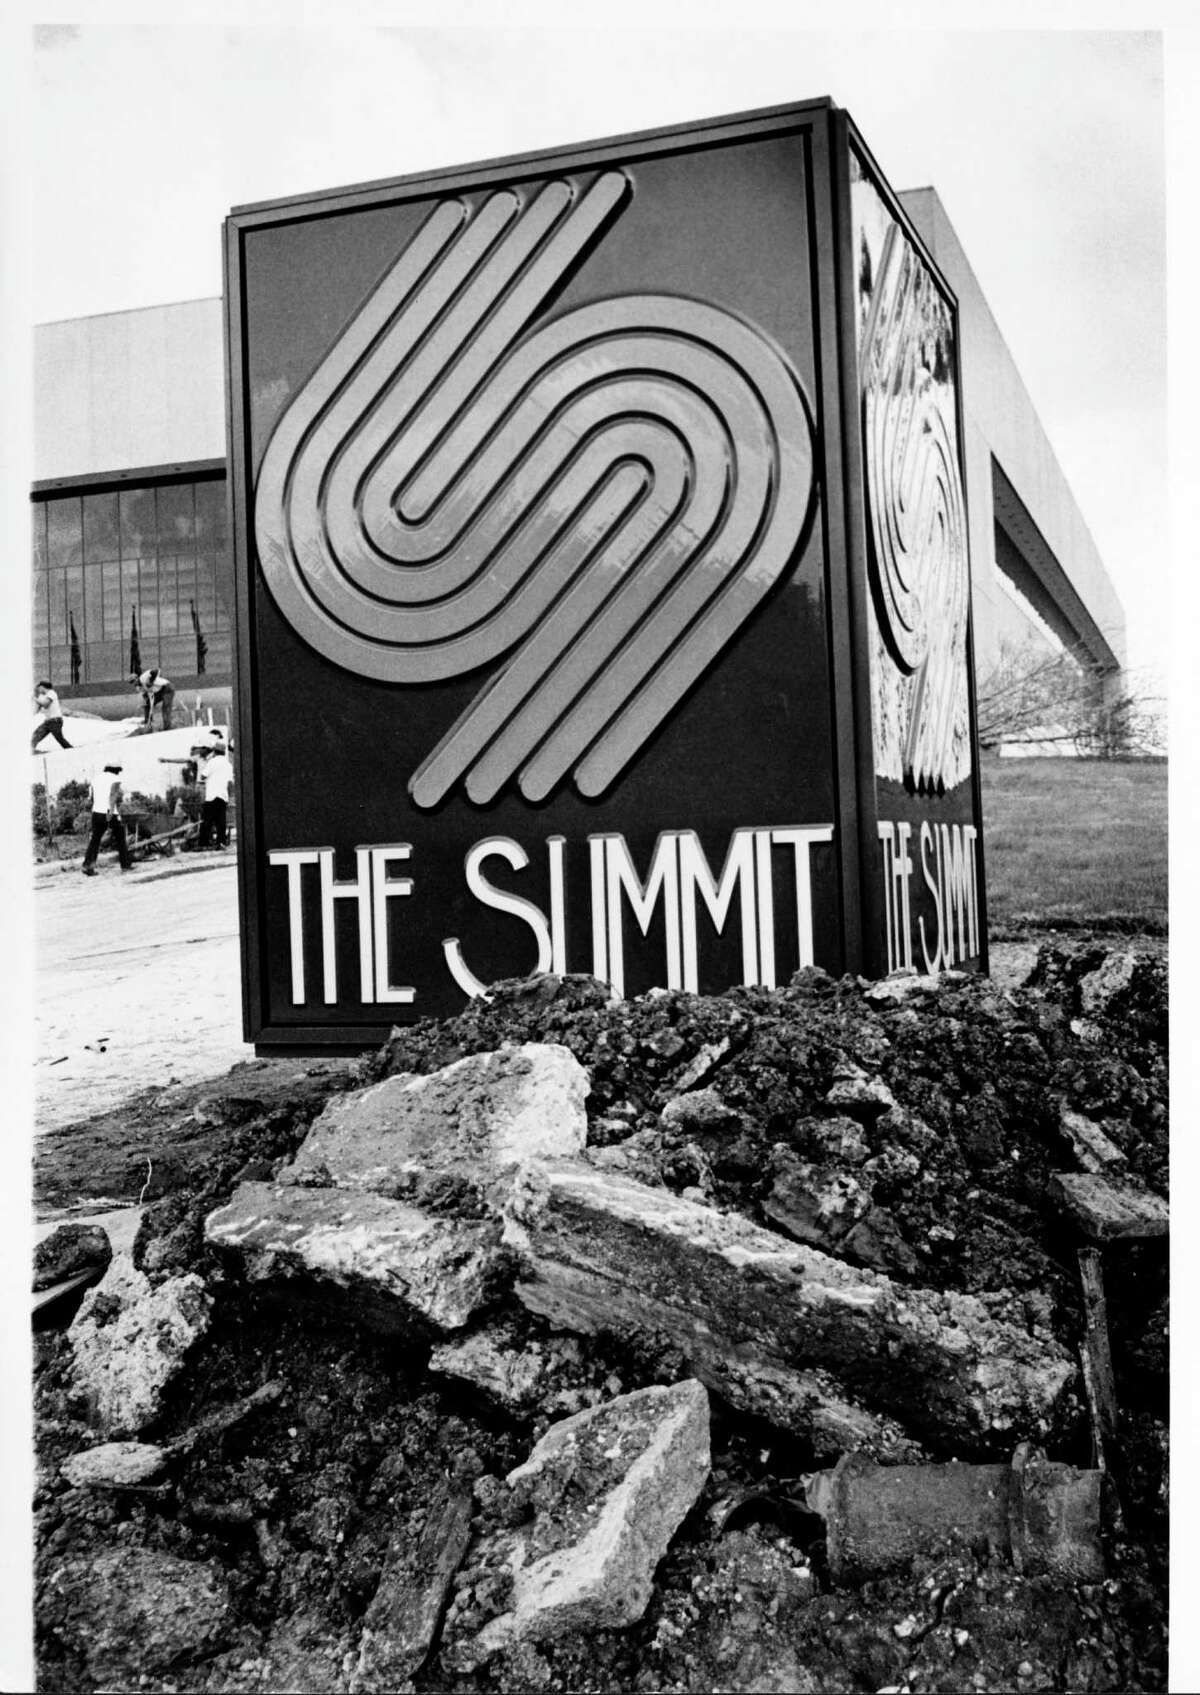 The Summit in its birthing stage in 1975. The building turns 42 years old this month, though most Houstonians only know it as Lakewood Church.